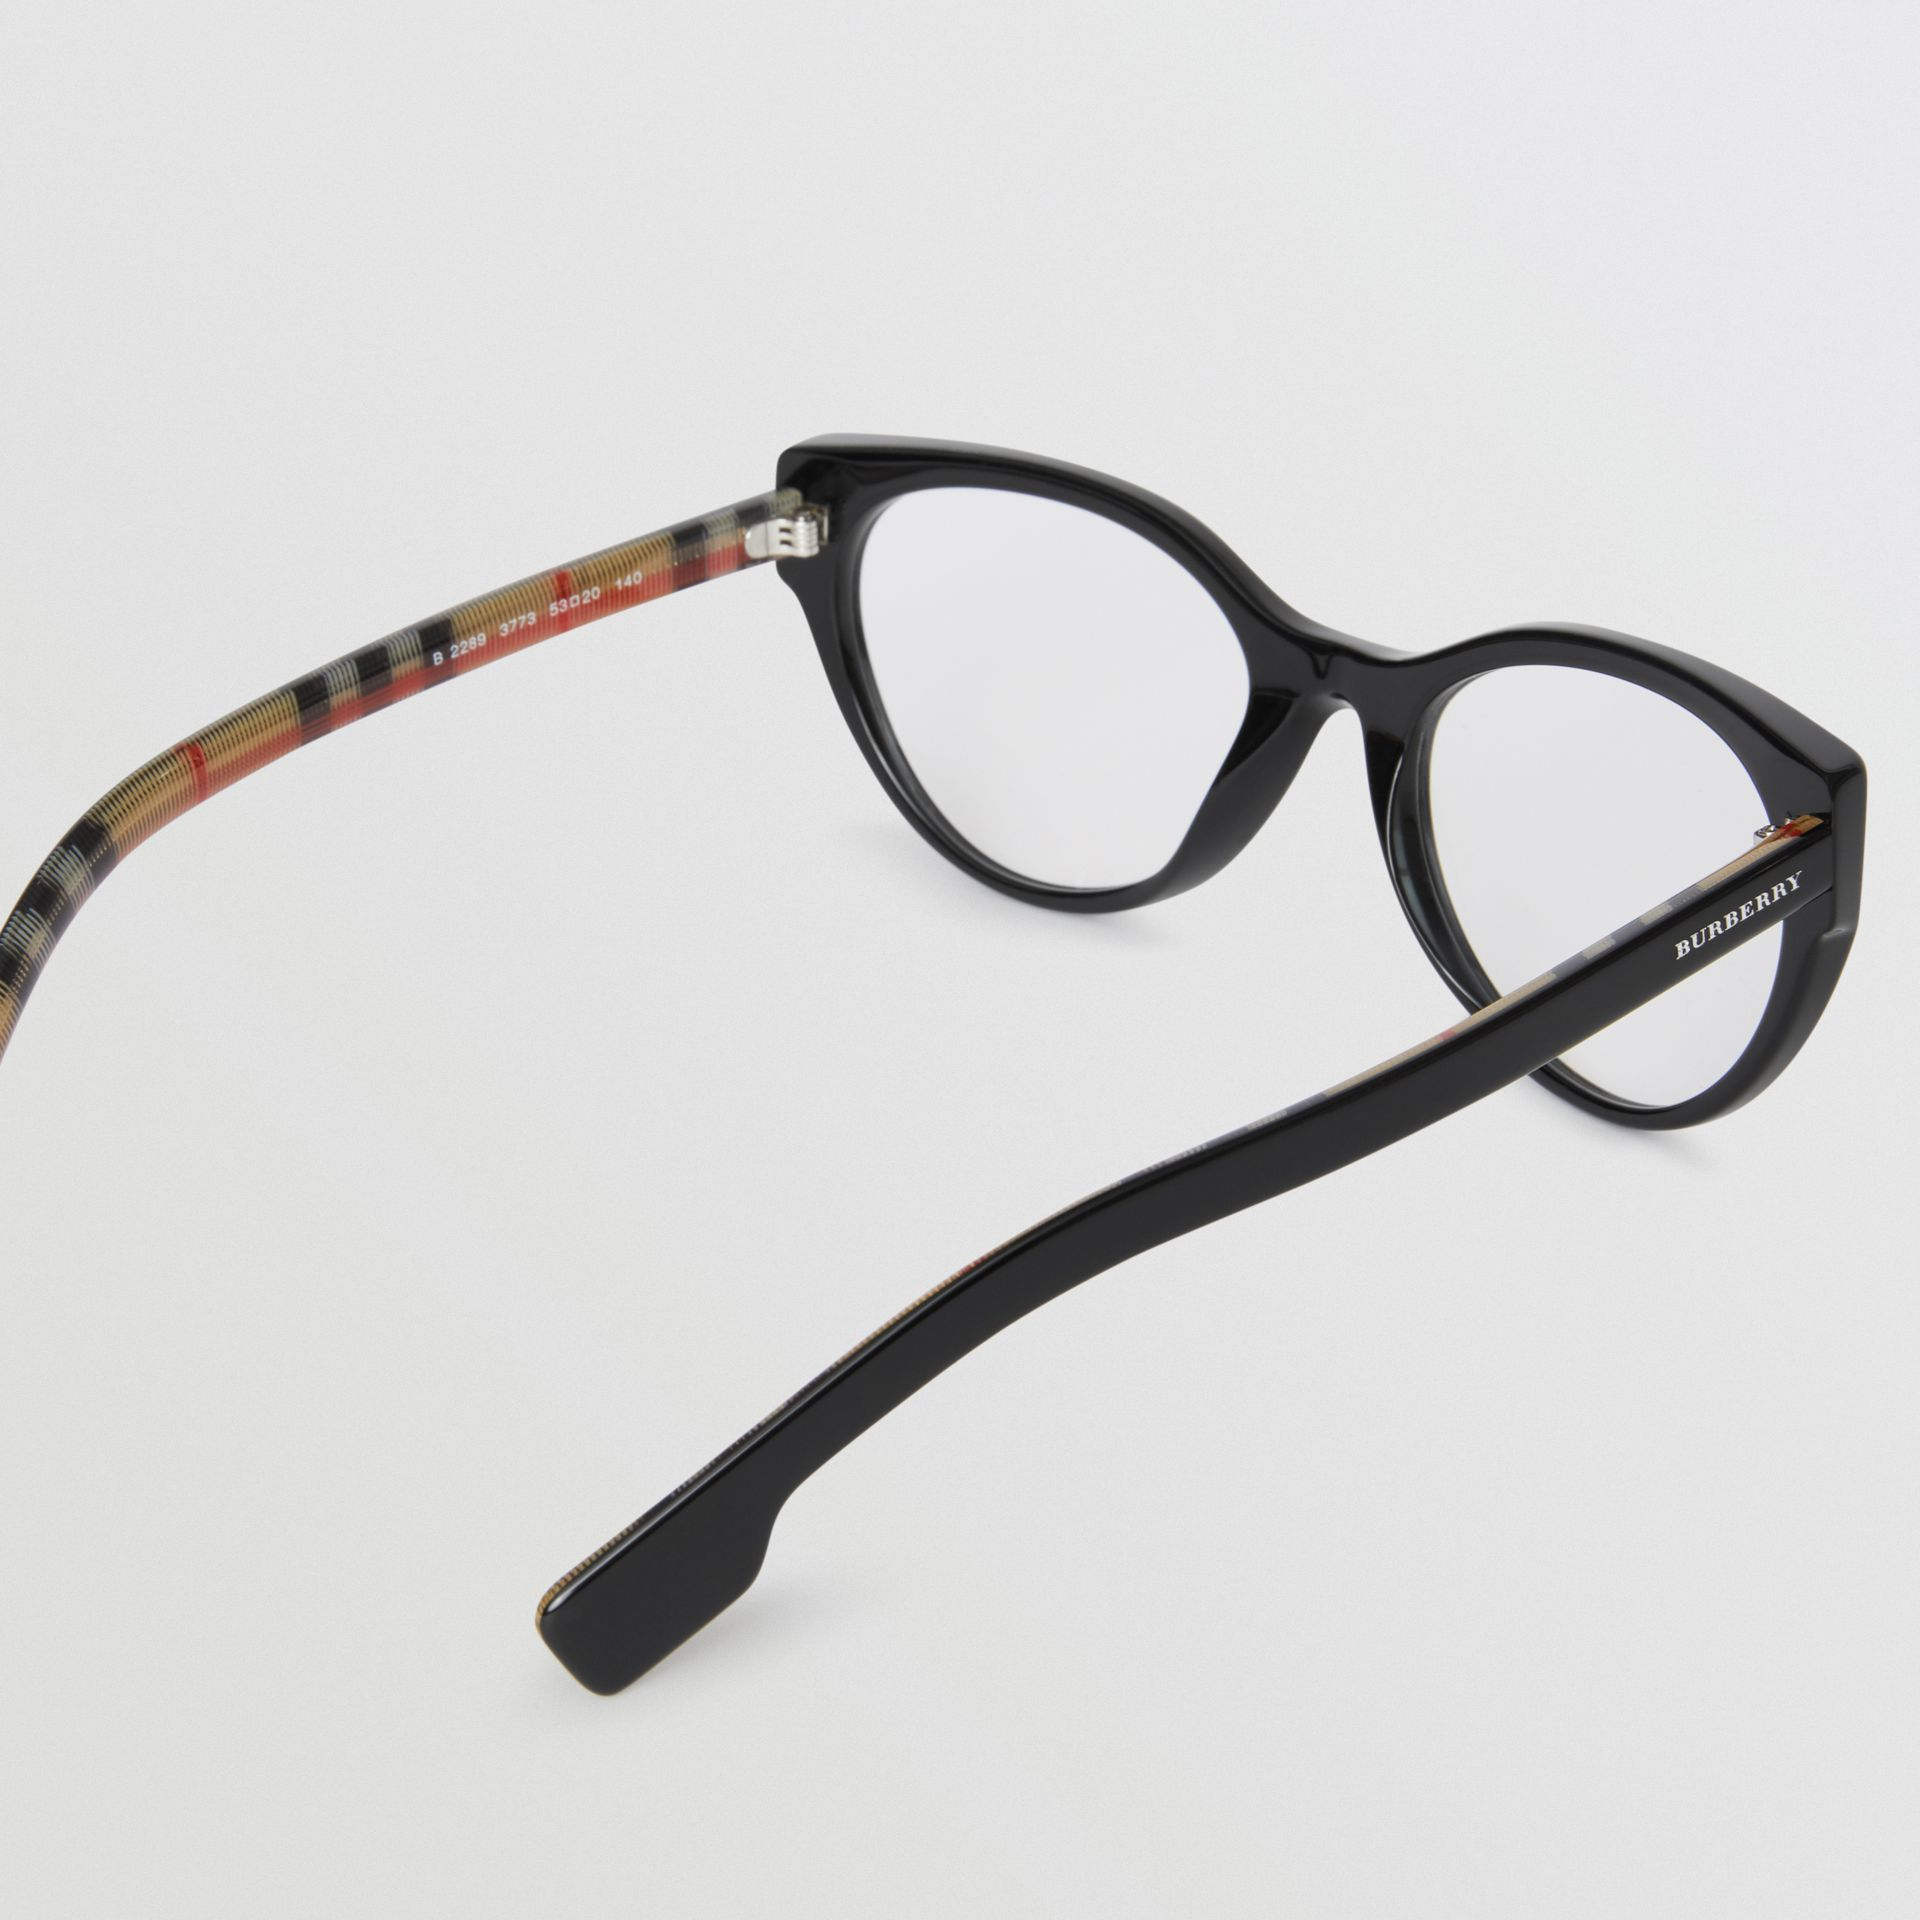 Vintage Check Detail Cat-eye Optical Frames in Black - Women | Burberry - gallery image 3